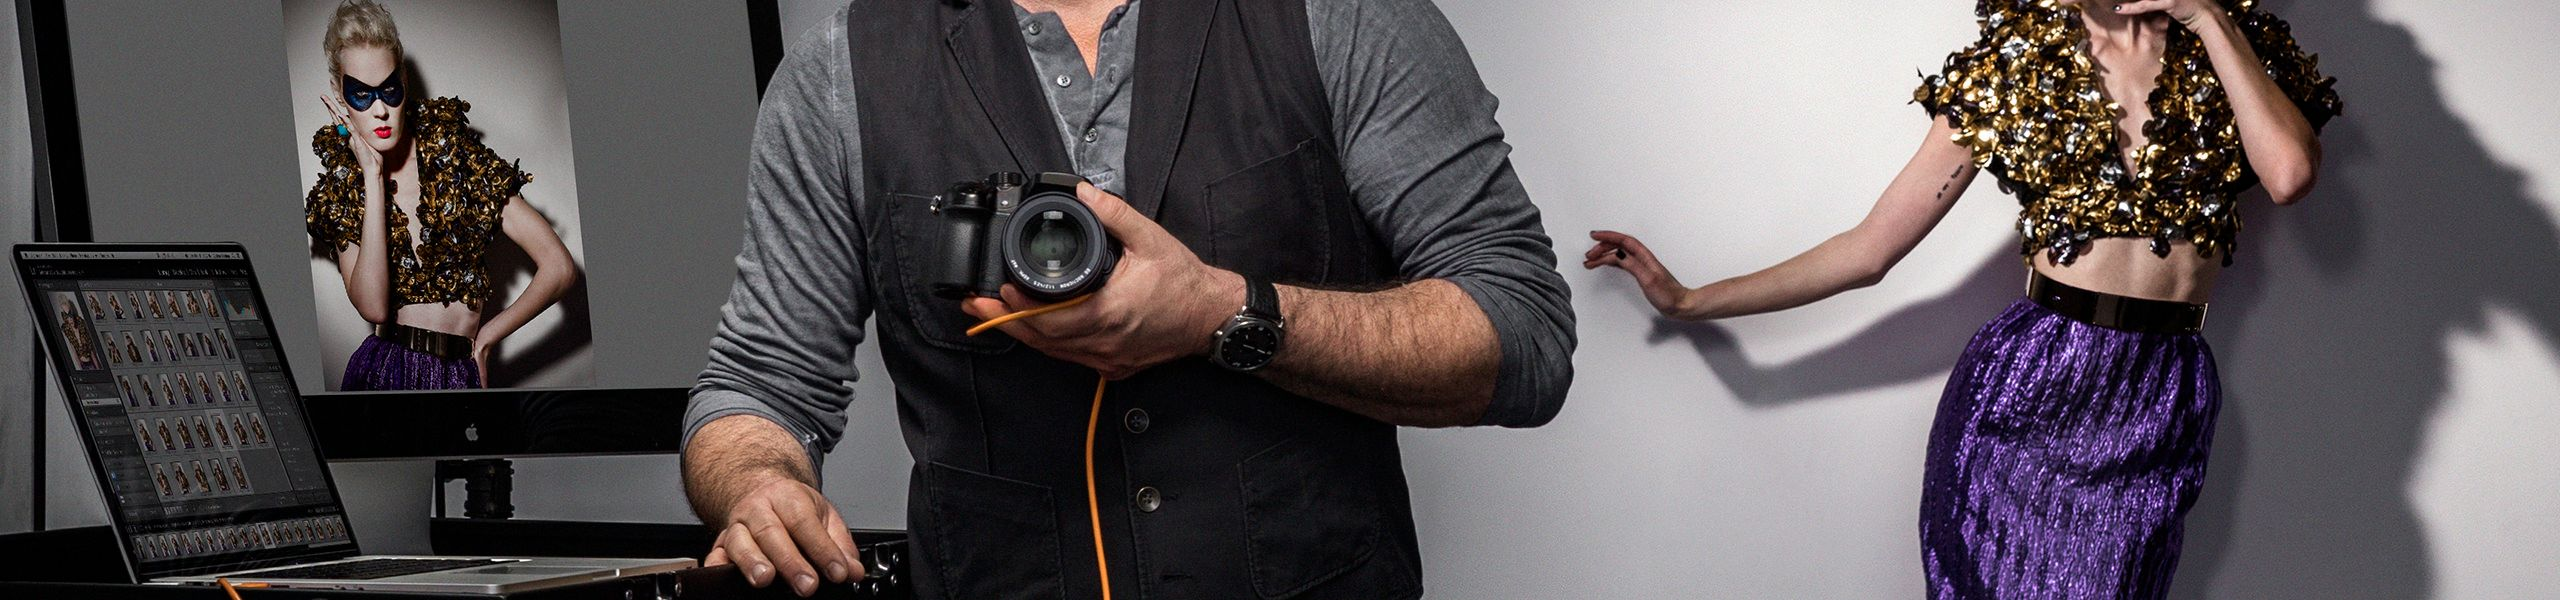 Commercial-Photographer-Michael-Grecco.jpg